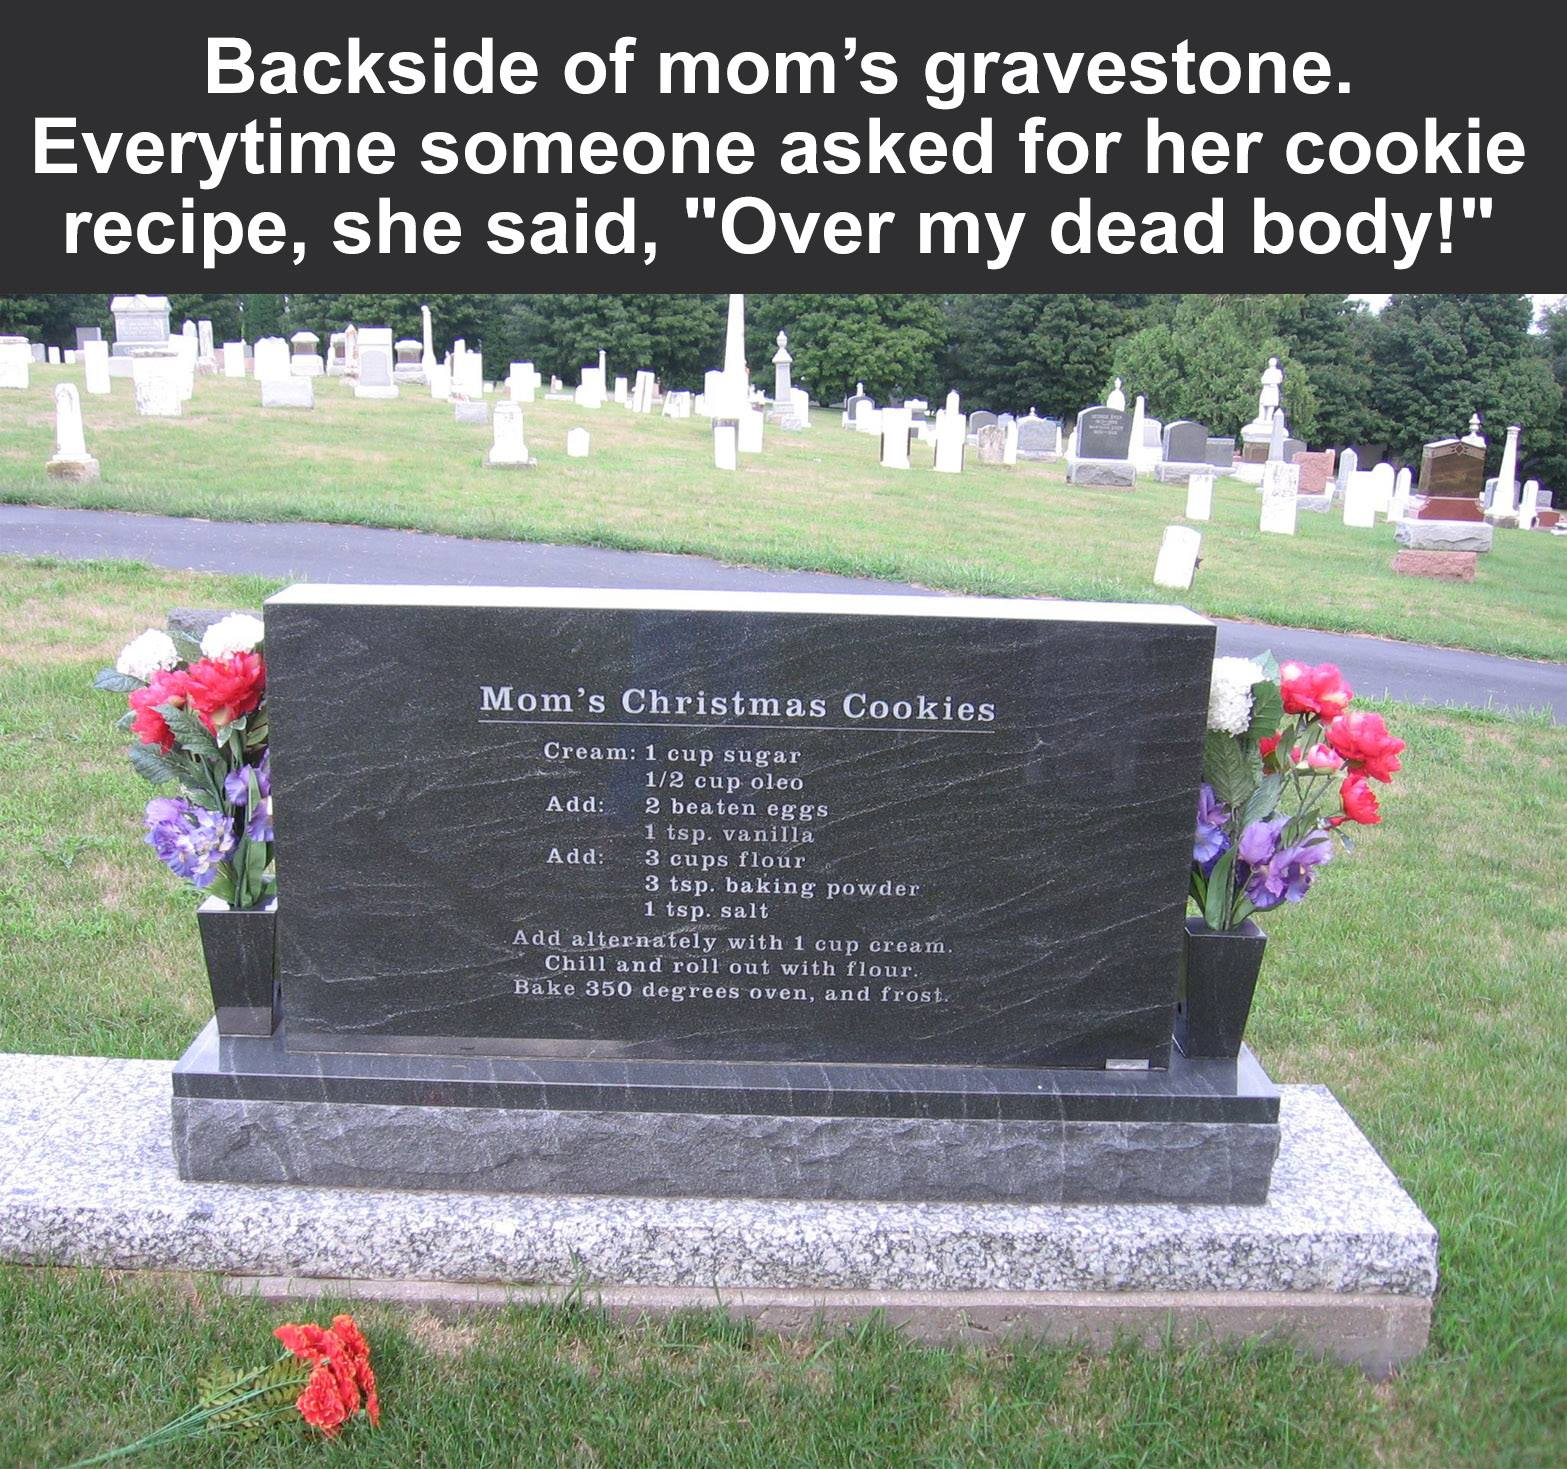 mom's christmas cookie recipe over her dead body